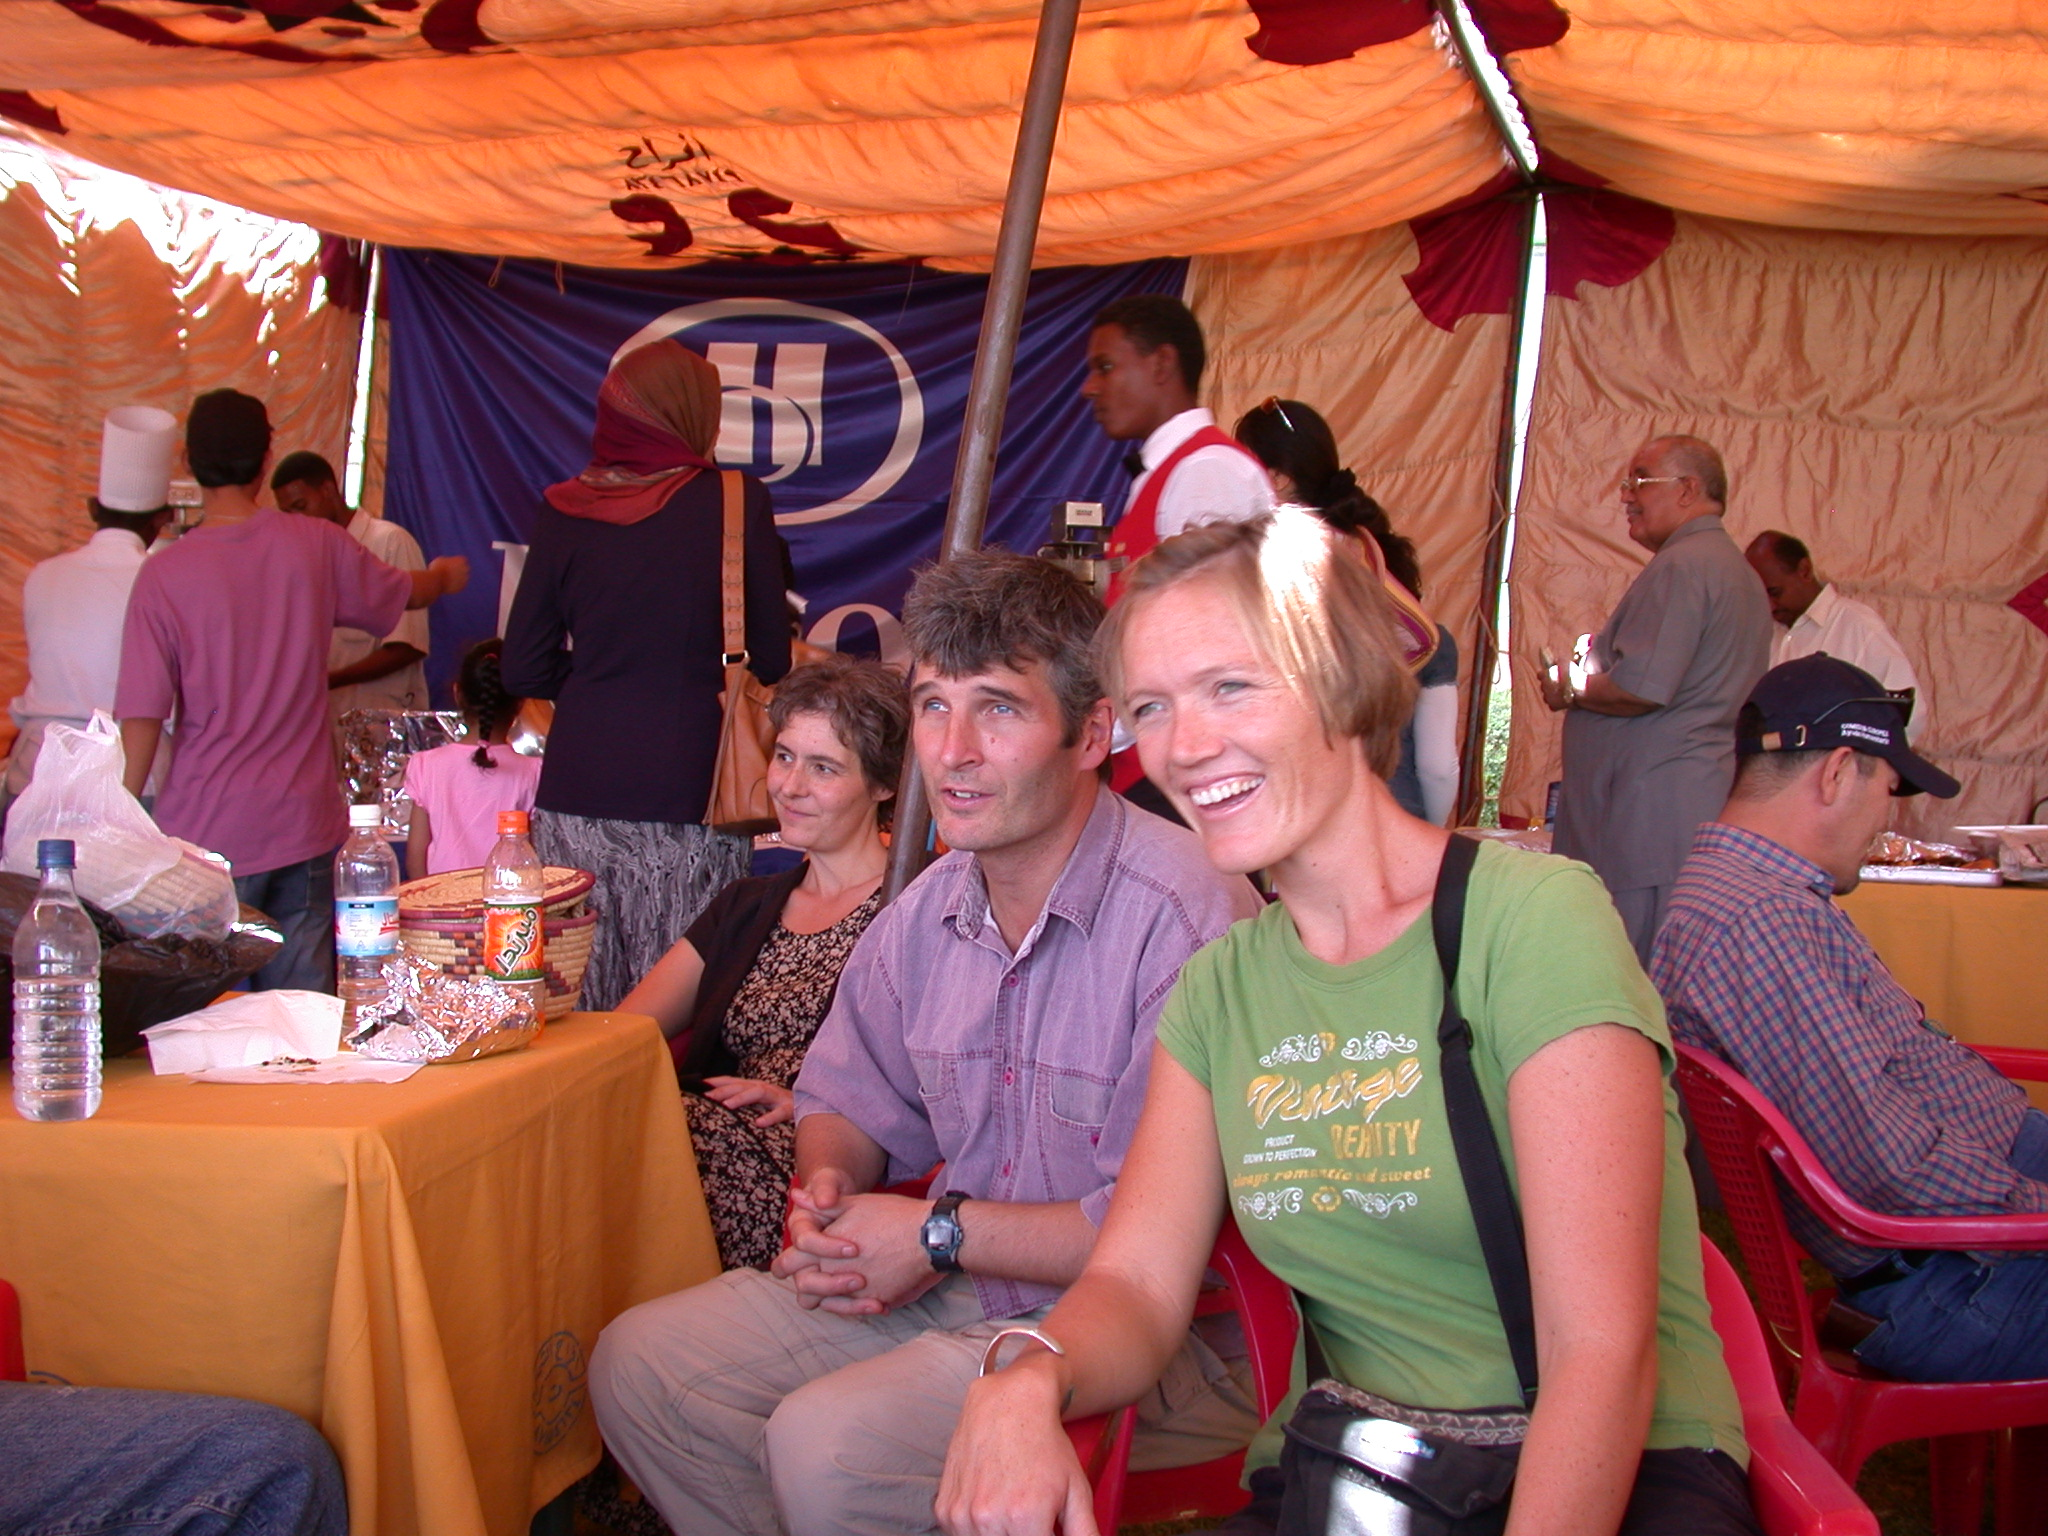 Rene, Brad, and Liz, International Charity Fair, Khartoum, Sudan